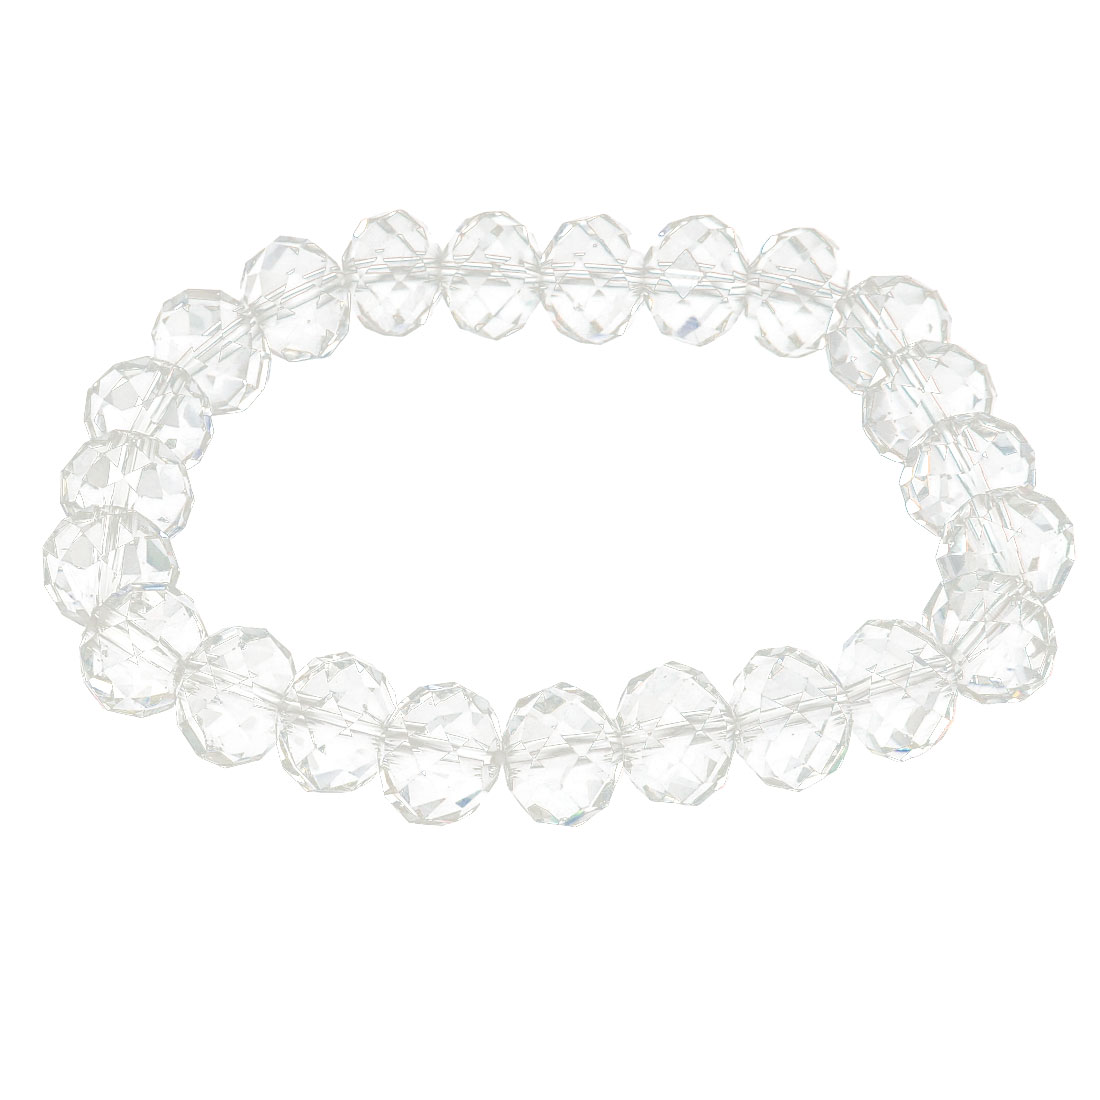 Girls Lady Gift Party Charm Fashion Jewelry Bling Elastic Crystal Bracelet Clear